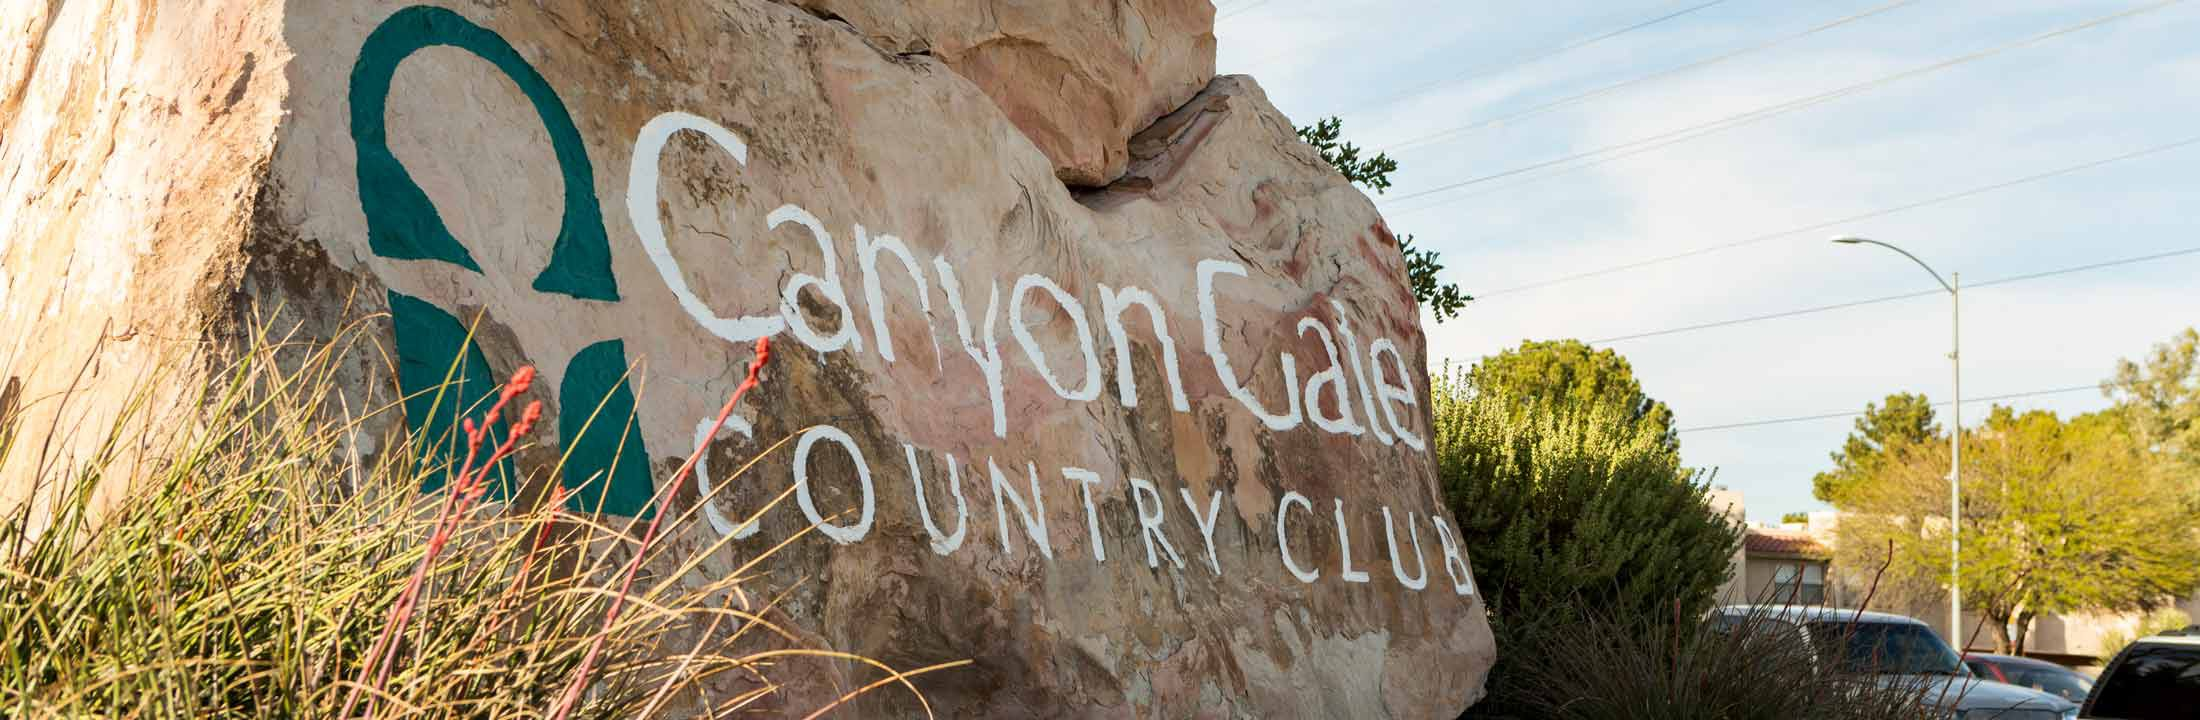 canyon-gate-country-club-homes-for-sale-las-vegas